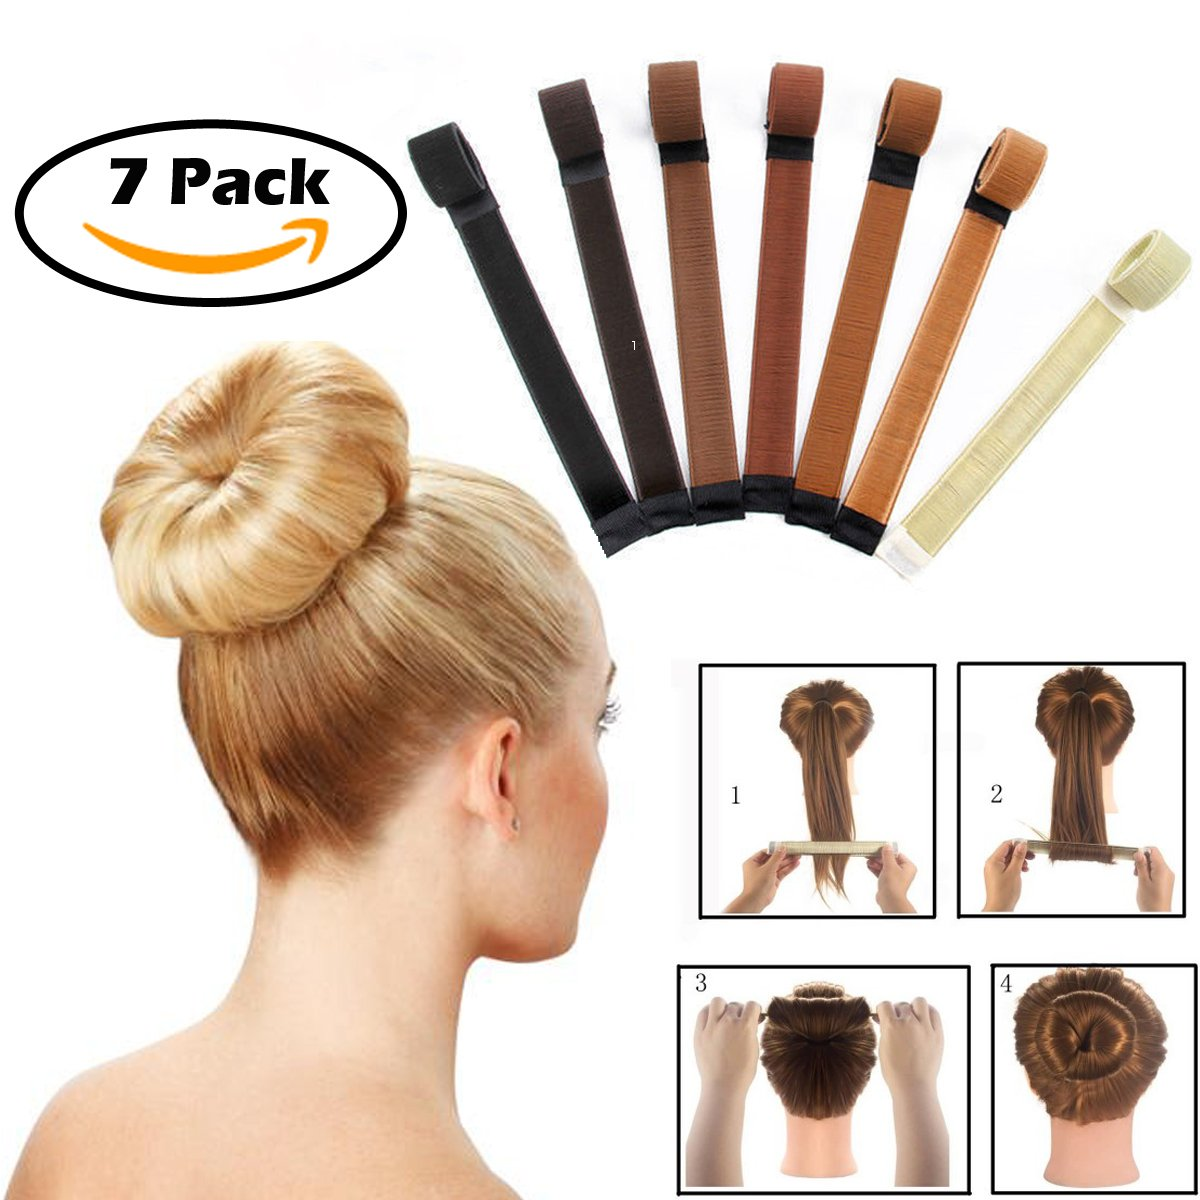 Magic Hair Donut Bun Maker Clip Instant Messy Hair Bun Making Styling Shaper Tool Fashion French Twist DIY Hair Band Accessory Set for Women Girls kids 7 Pack WZT01